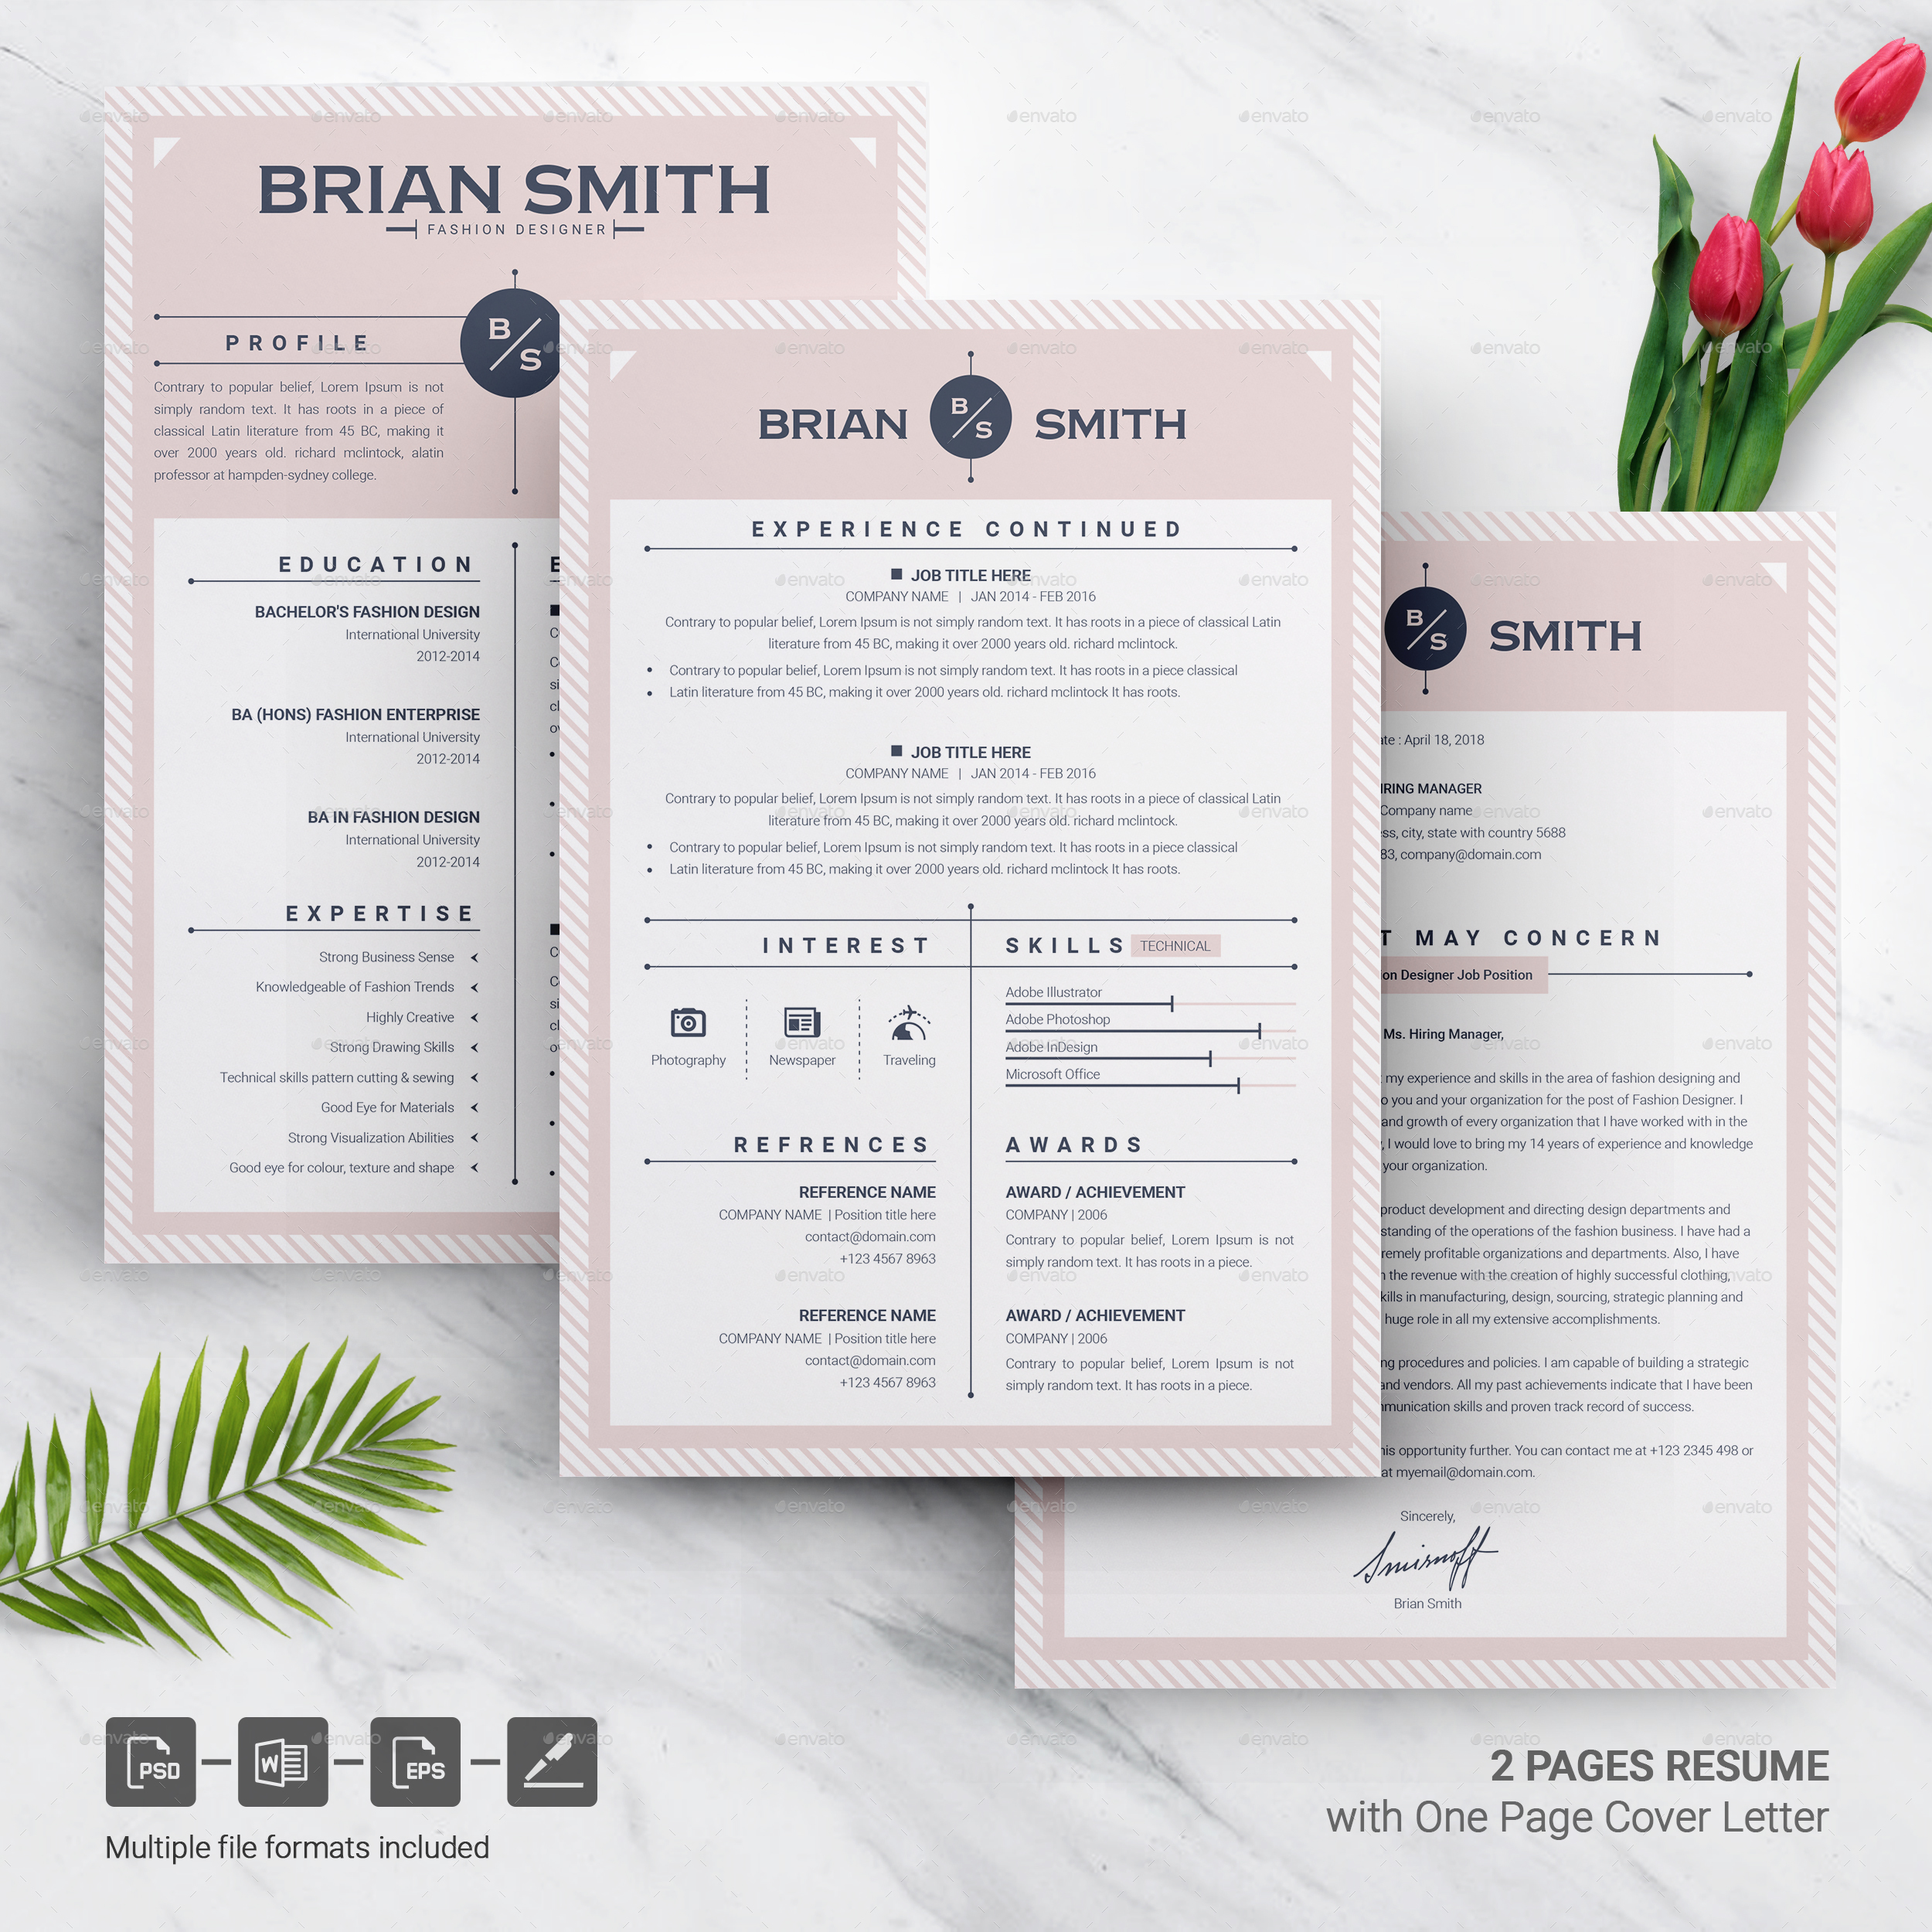 Resume Template | Modern & Creative Professional Resume Template for Word